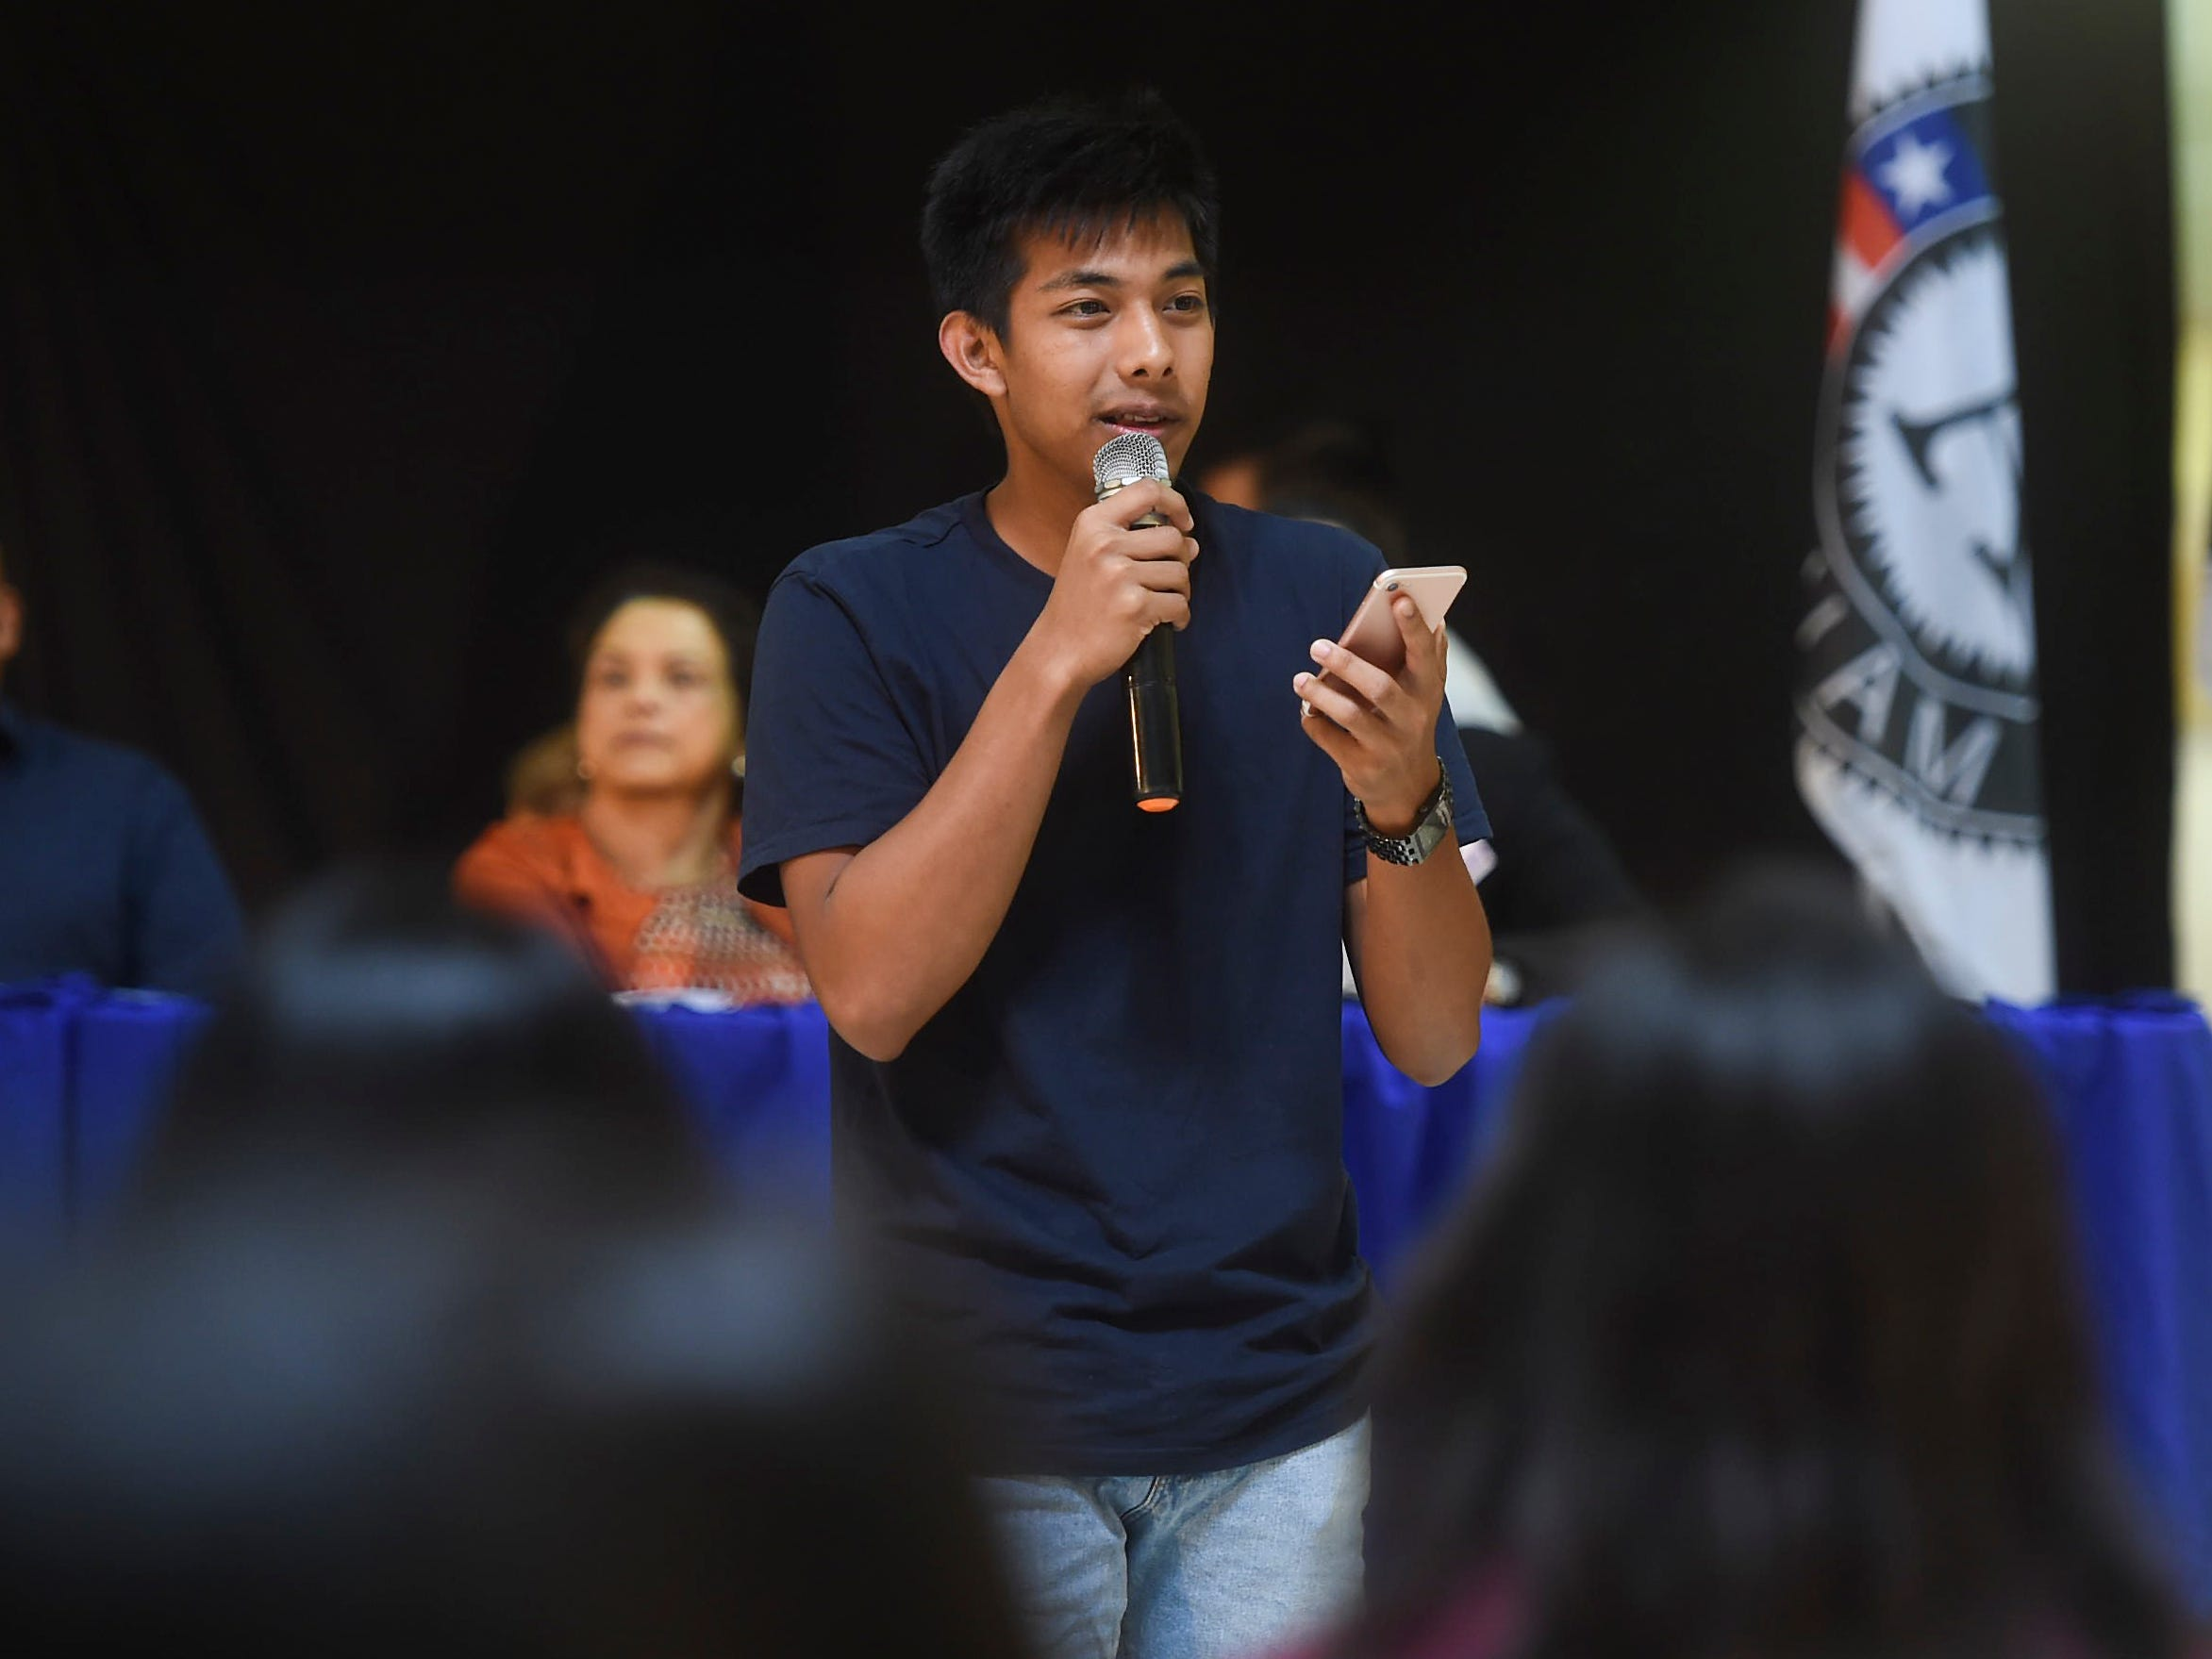 Luke Bukikosa, the George Washington High School Student Body Association vice president, recites a poem during the 2019 Martin Luther King Jr. Day of Service ceremony at the Agana Shopping Center, Jan. 21, 2019.